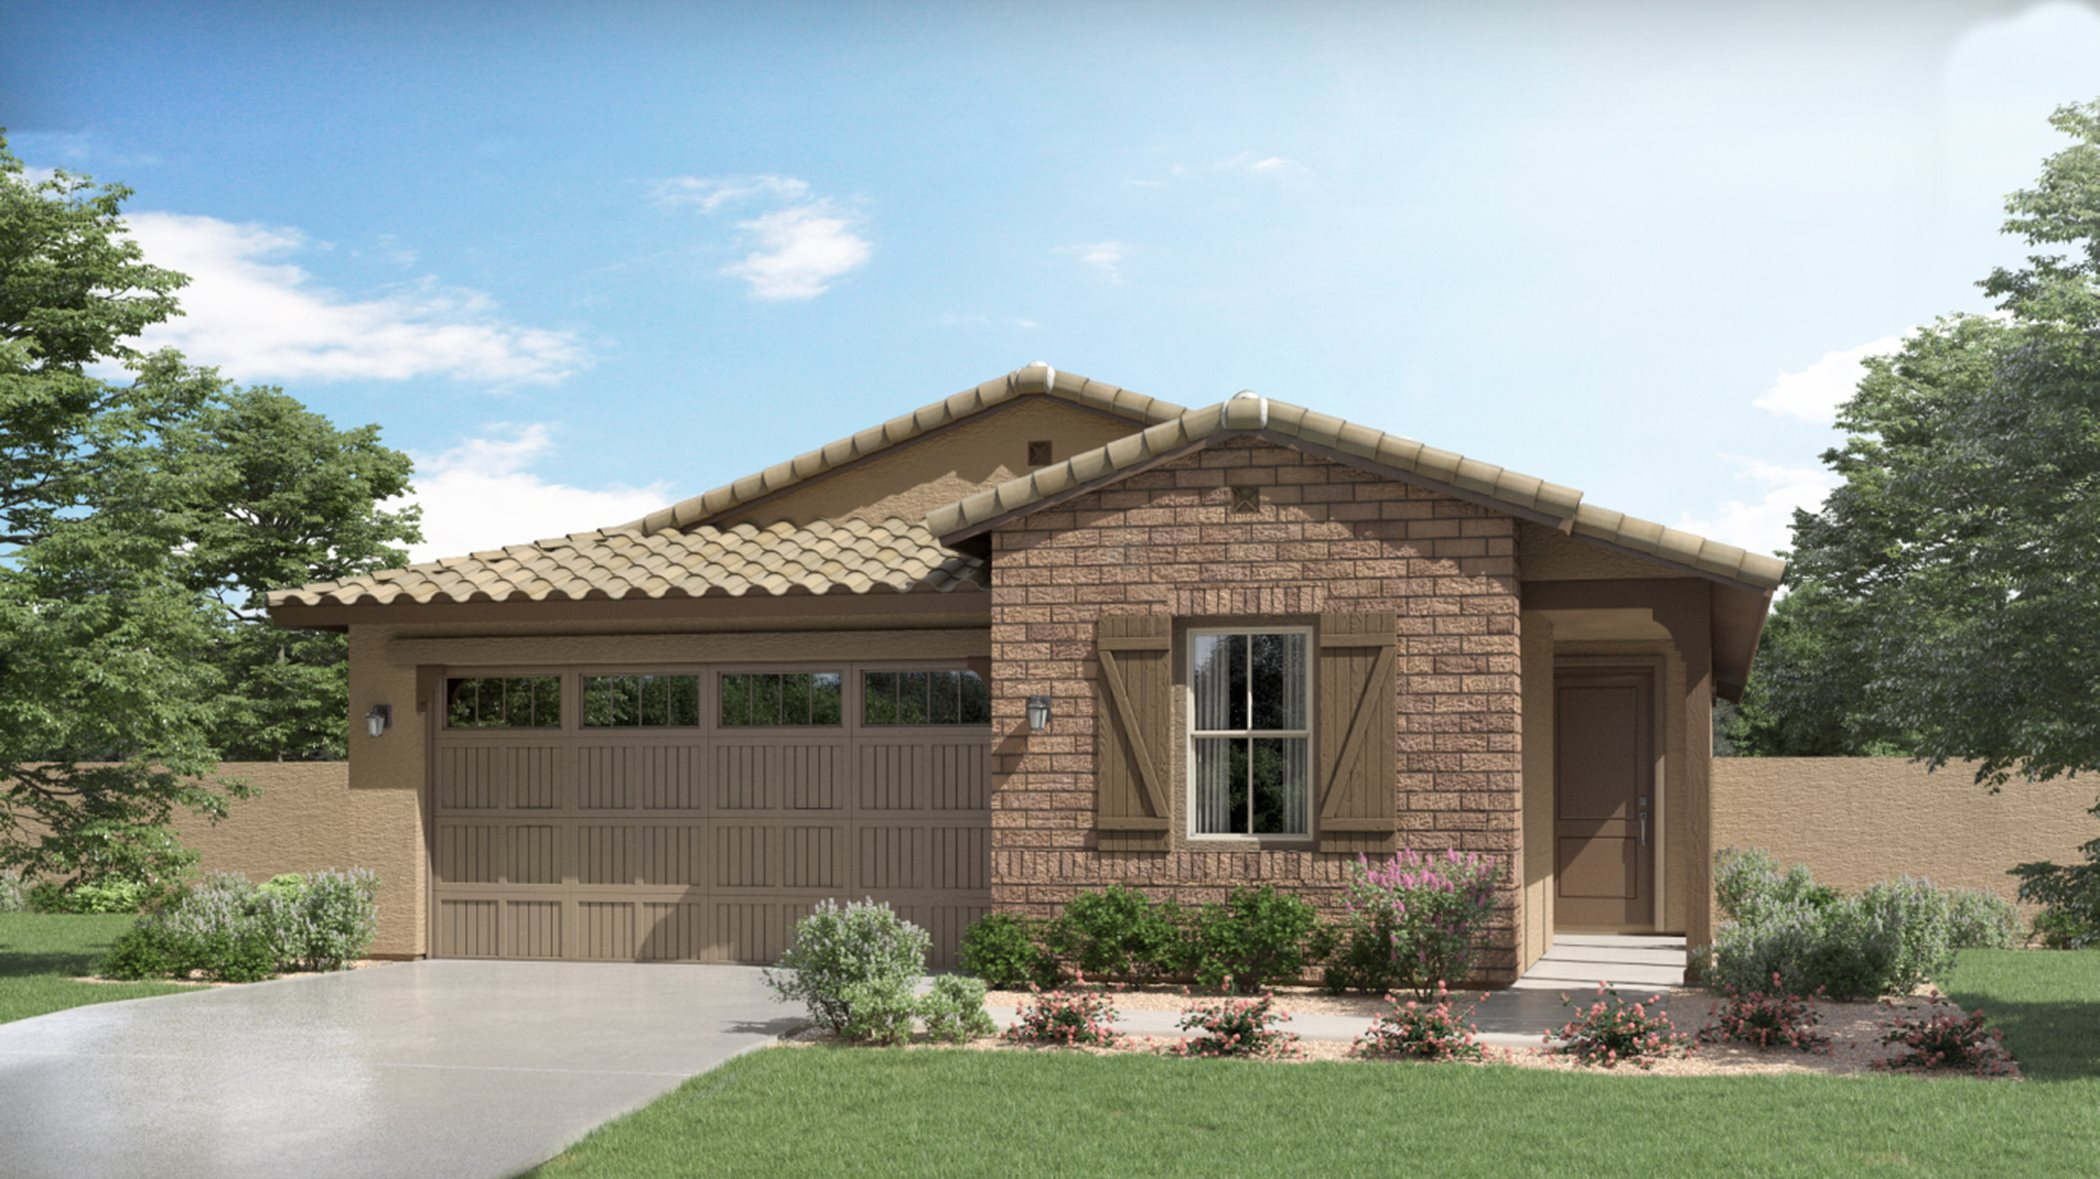 Asher Pointe Discovery - Palo Verde Plan 3519 Exterior H